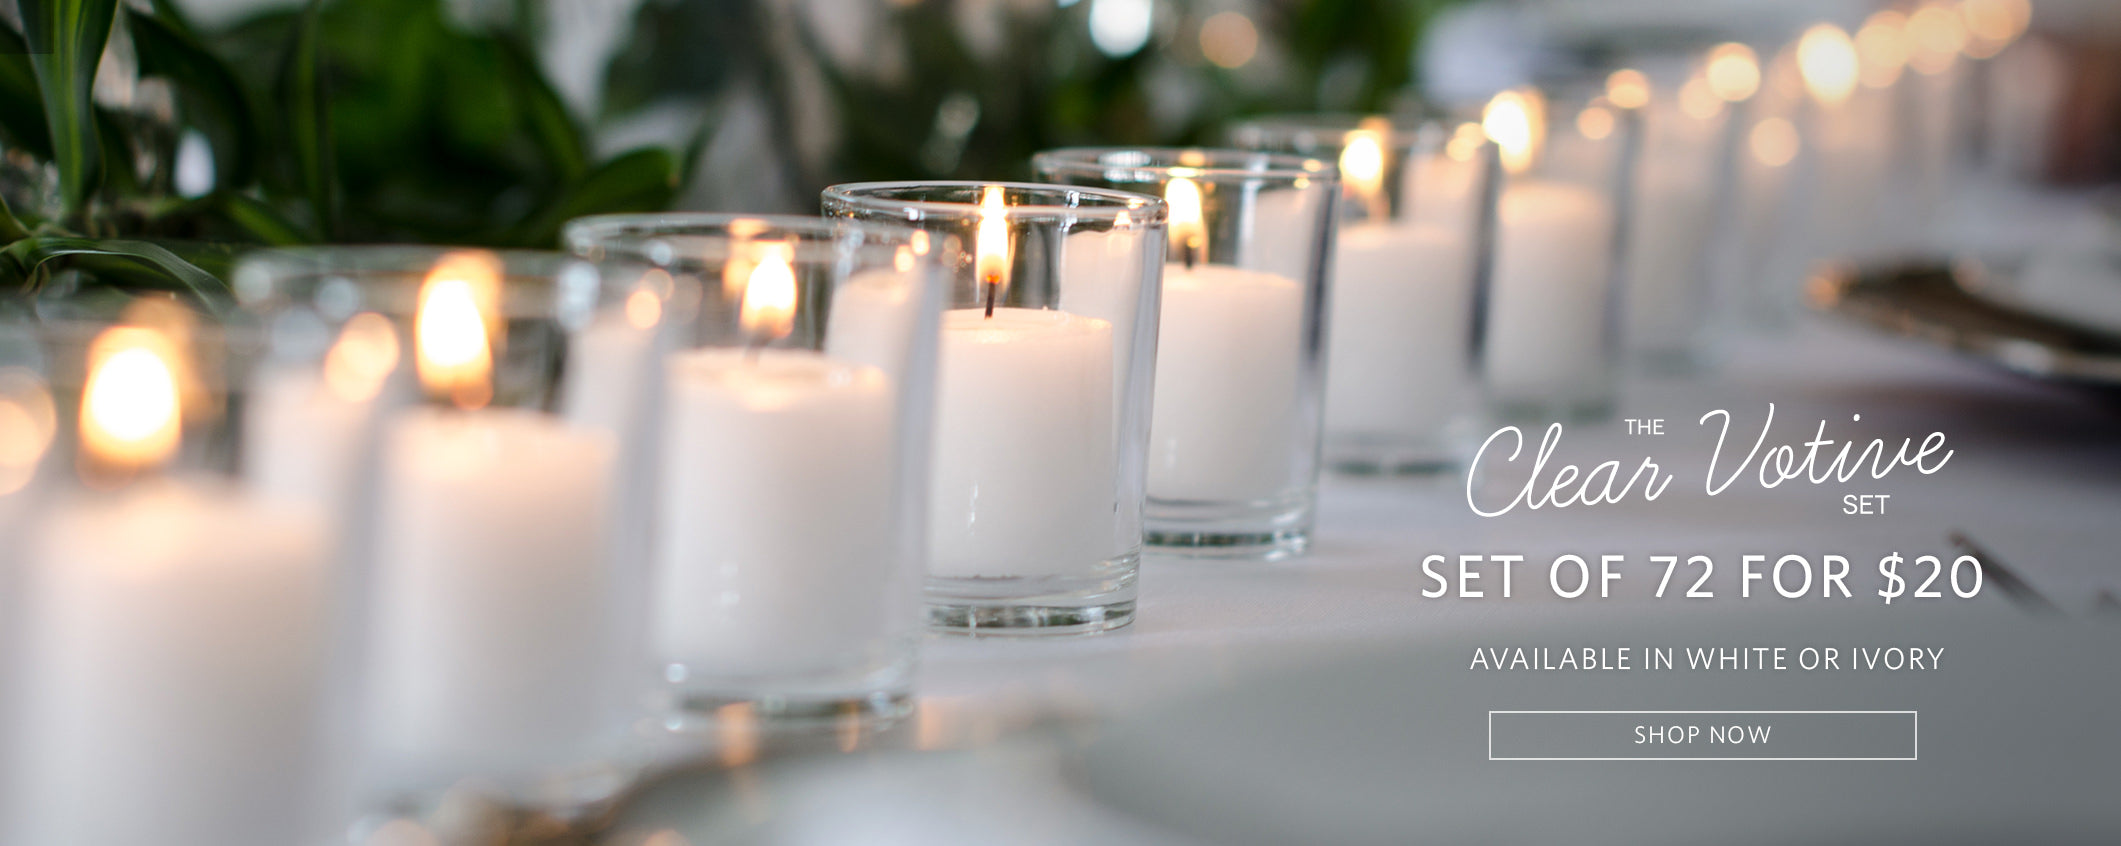 The Clear Votive Set. Set of 72 for $20. Available in white or ivory. Shop Now.